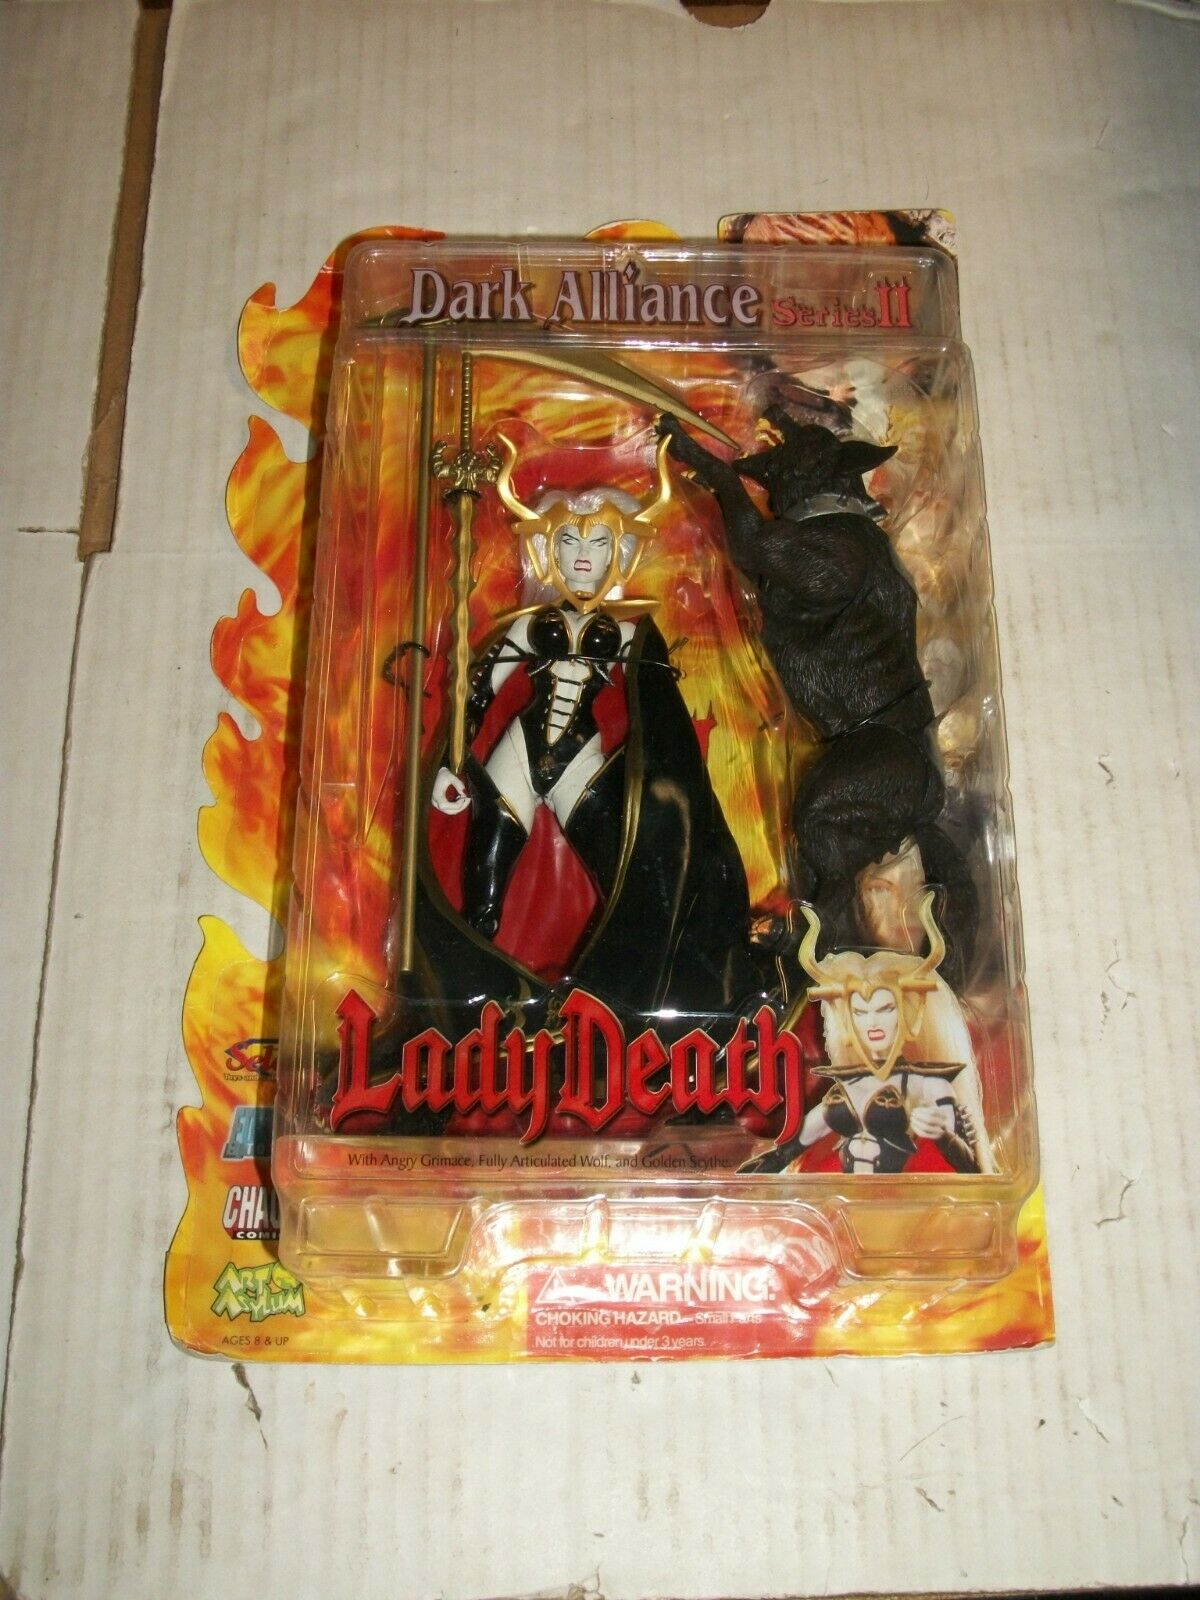 Chaos Diamond Select LADY DEATH & WOLF Dark tuttiiance Series II cifra